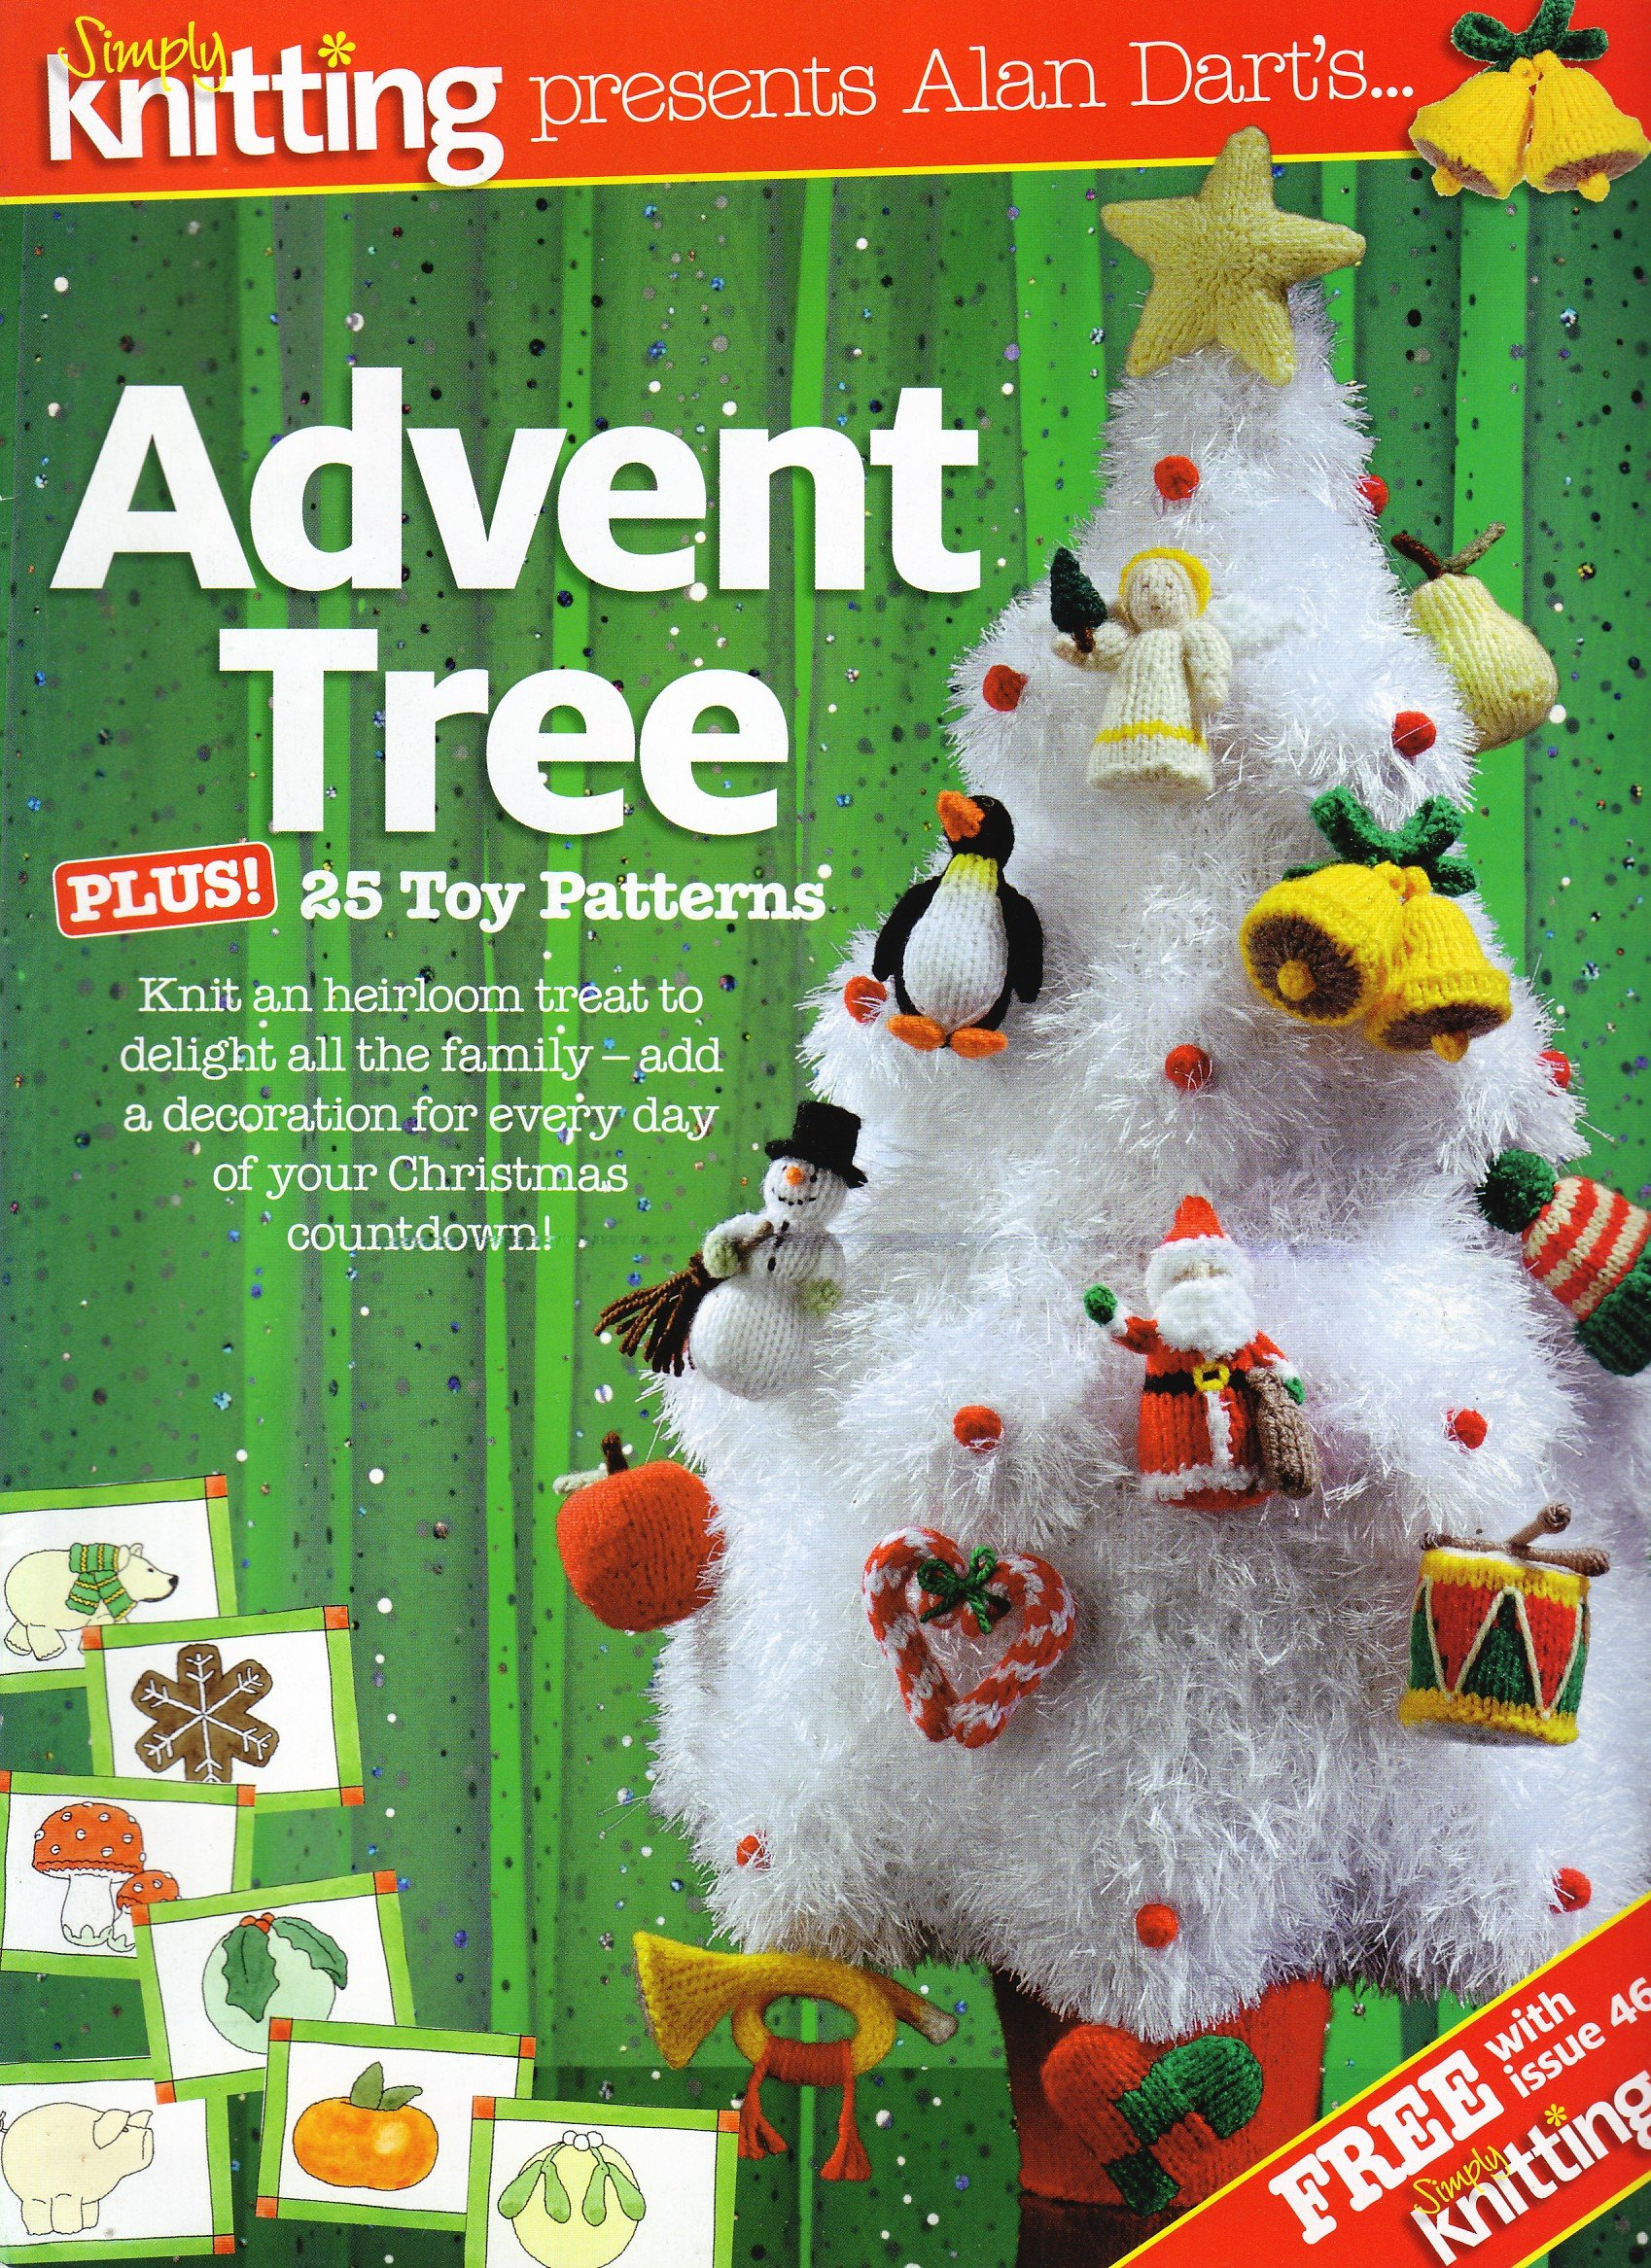 Christmas Advent Tree plus 25 Toy Patterns by Alan Dart Knitting ...